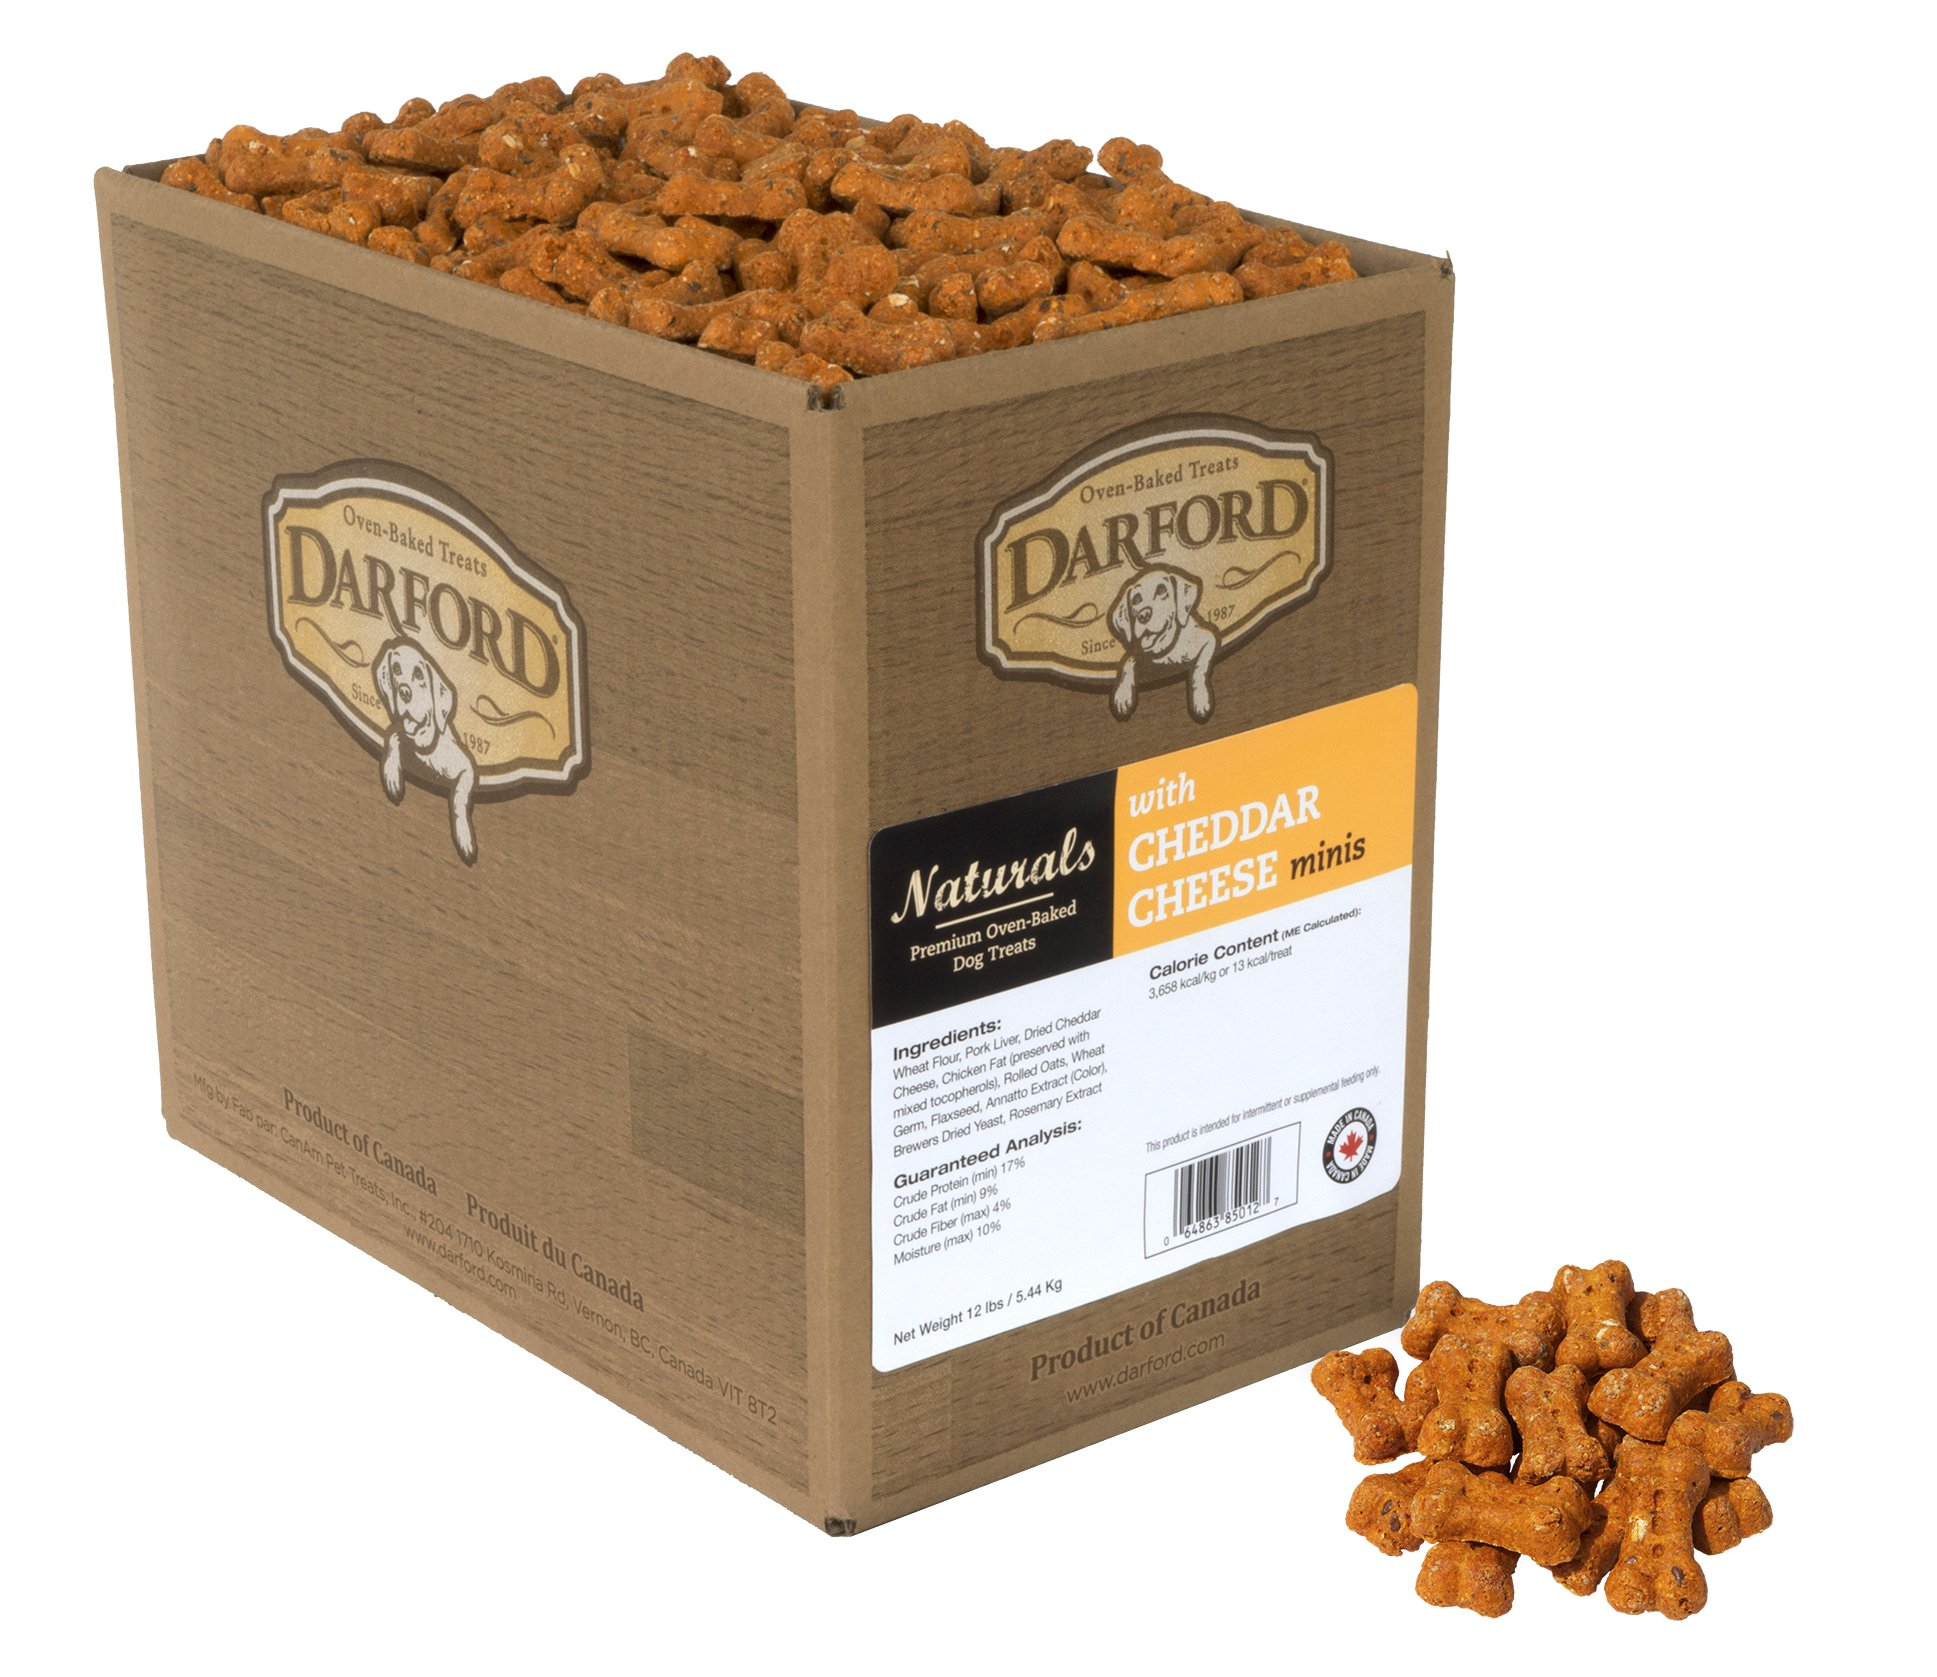 Naturals Oven Baked Dog Treats with Cheddar Cheese Minis, 12 lb by Darford